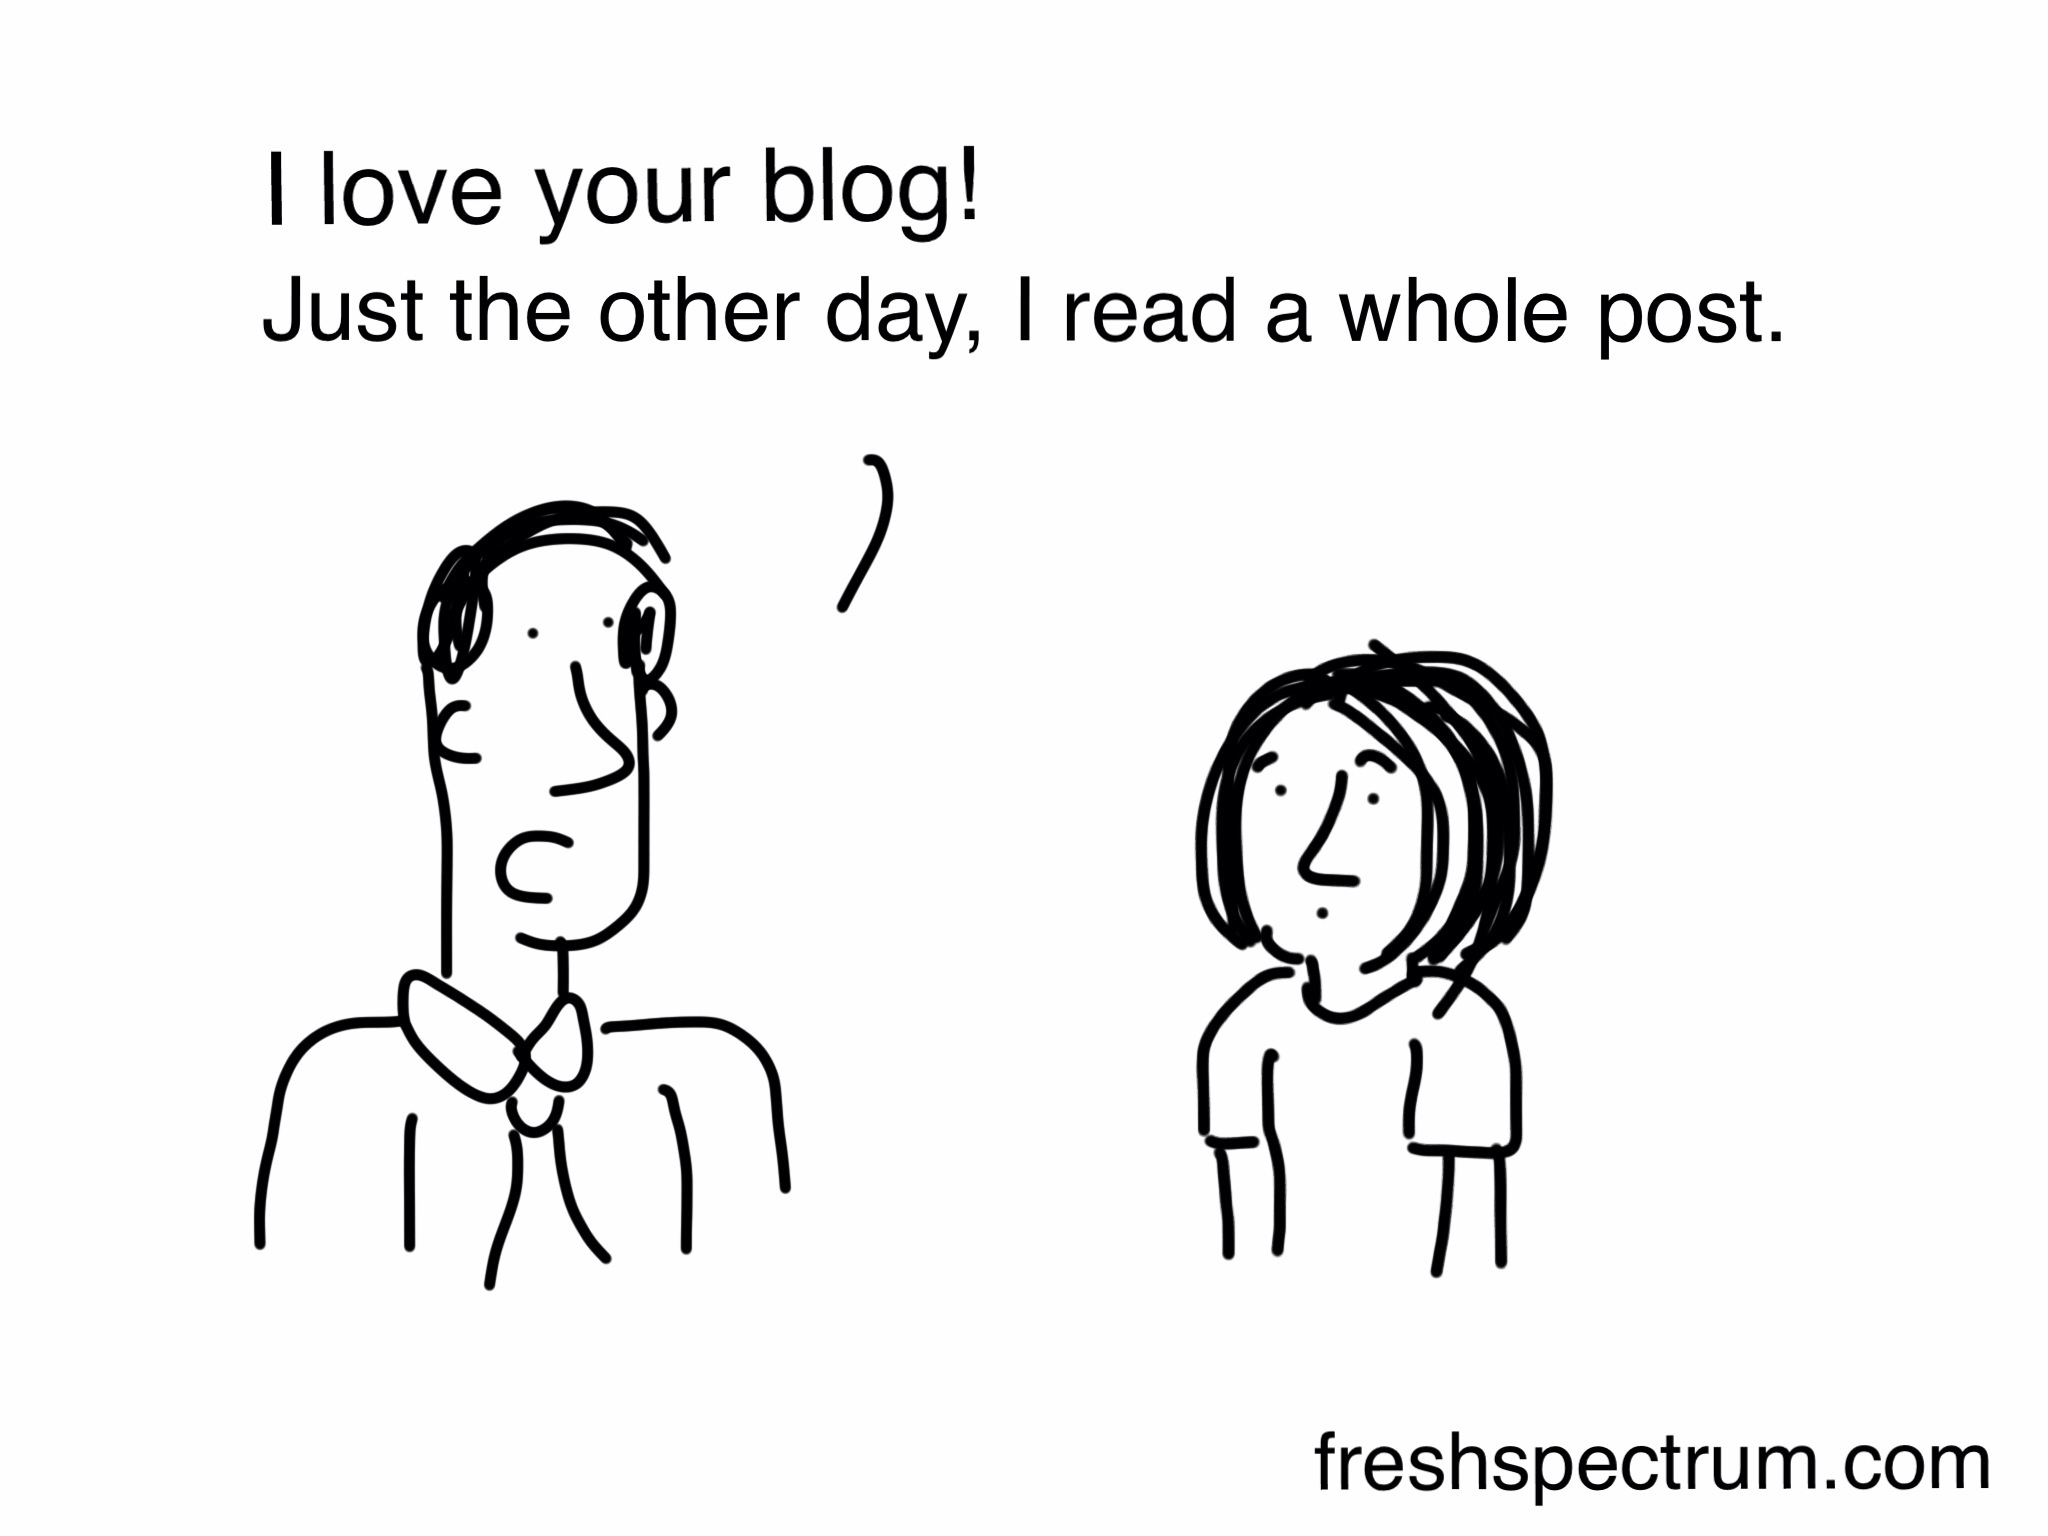 Love your blog cartoon by Chris Lysy